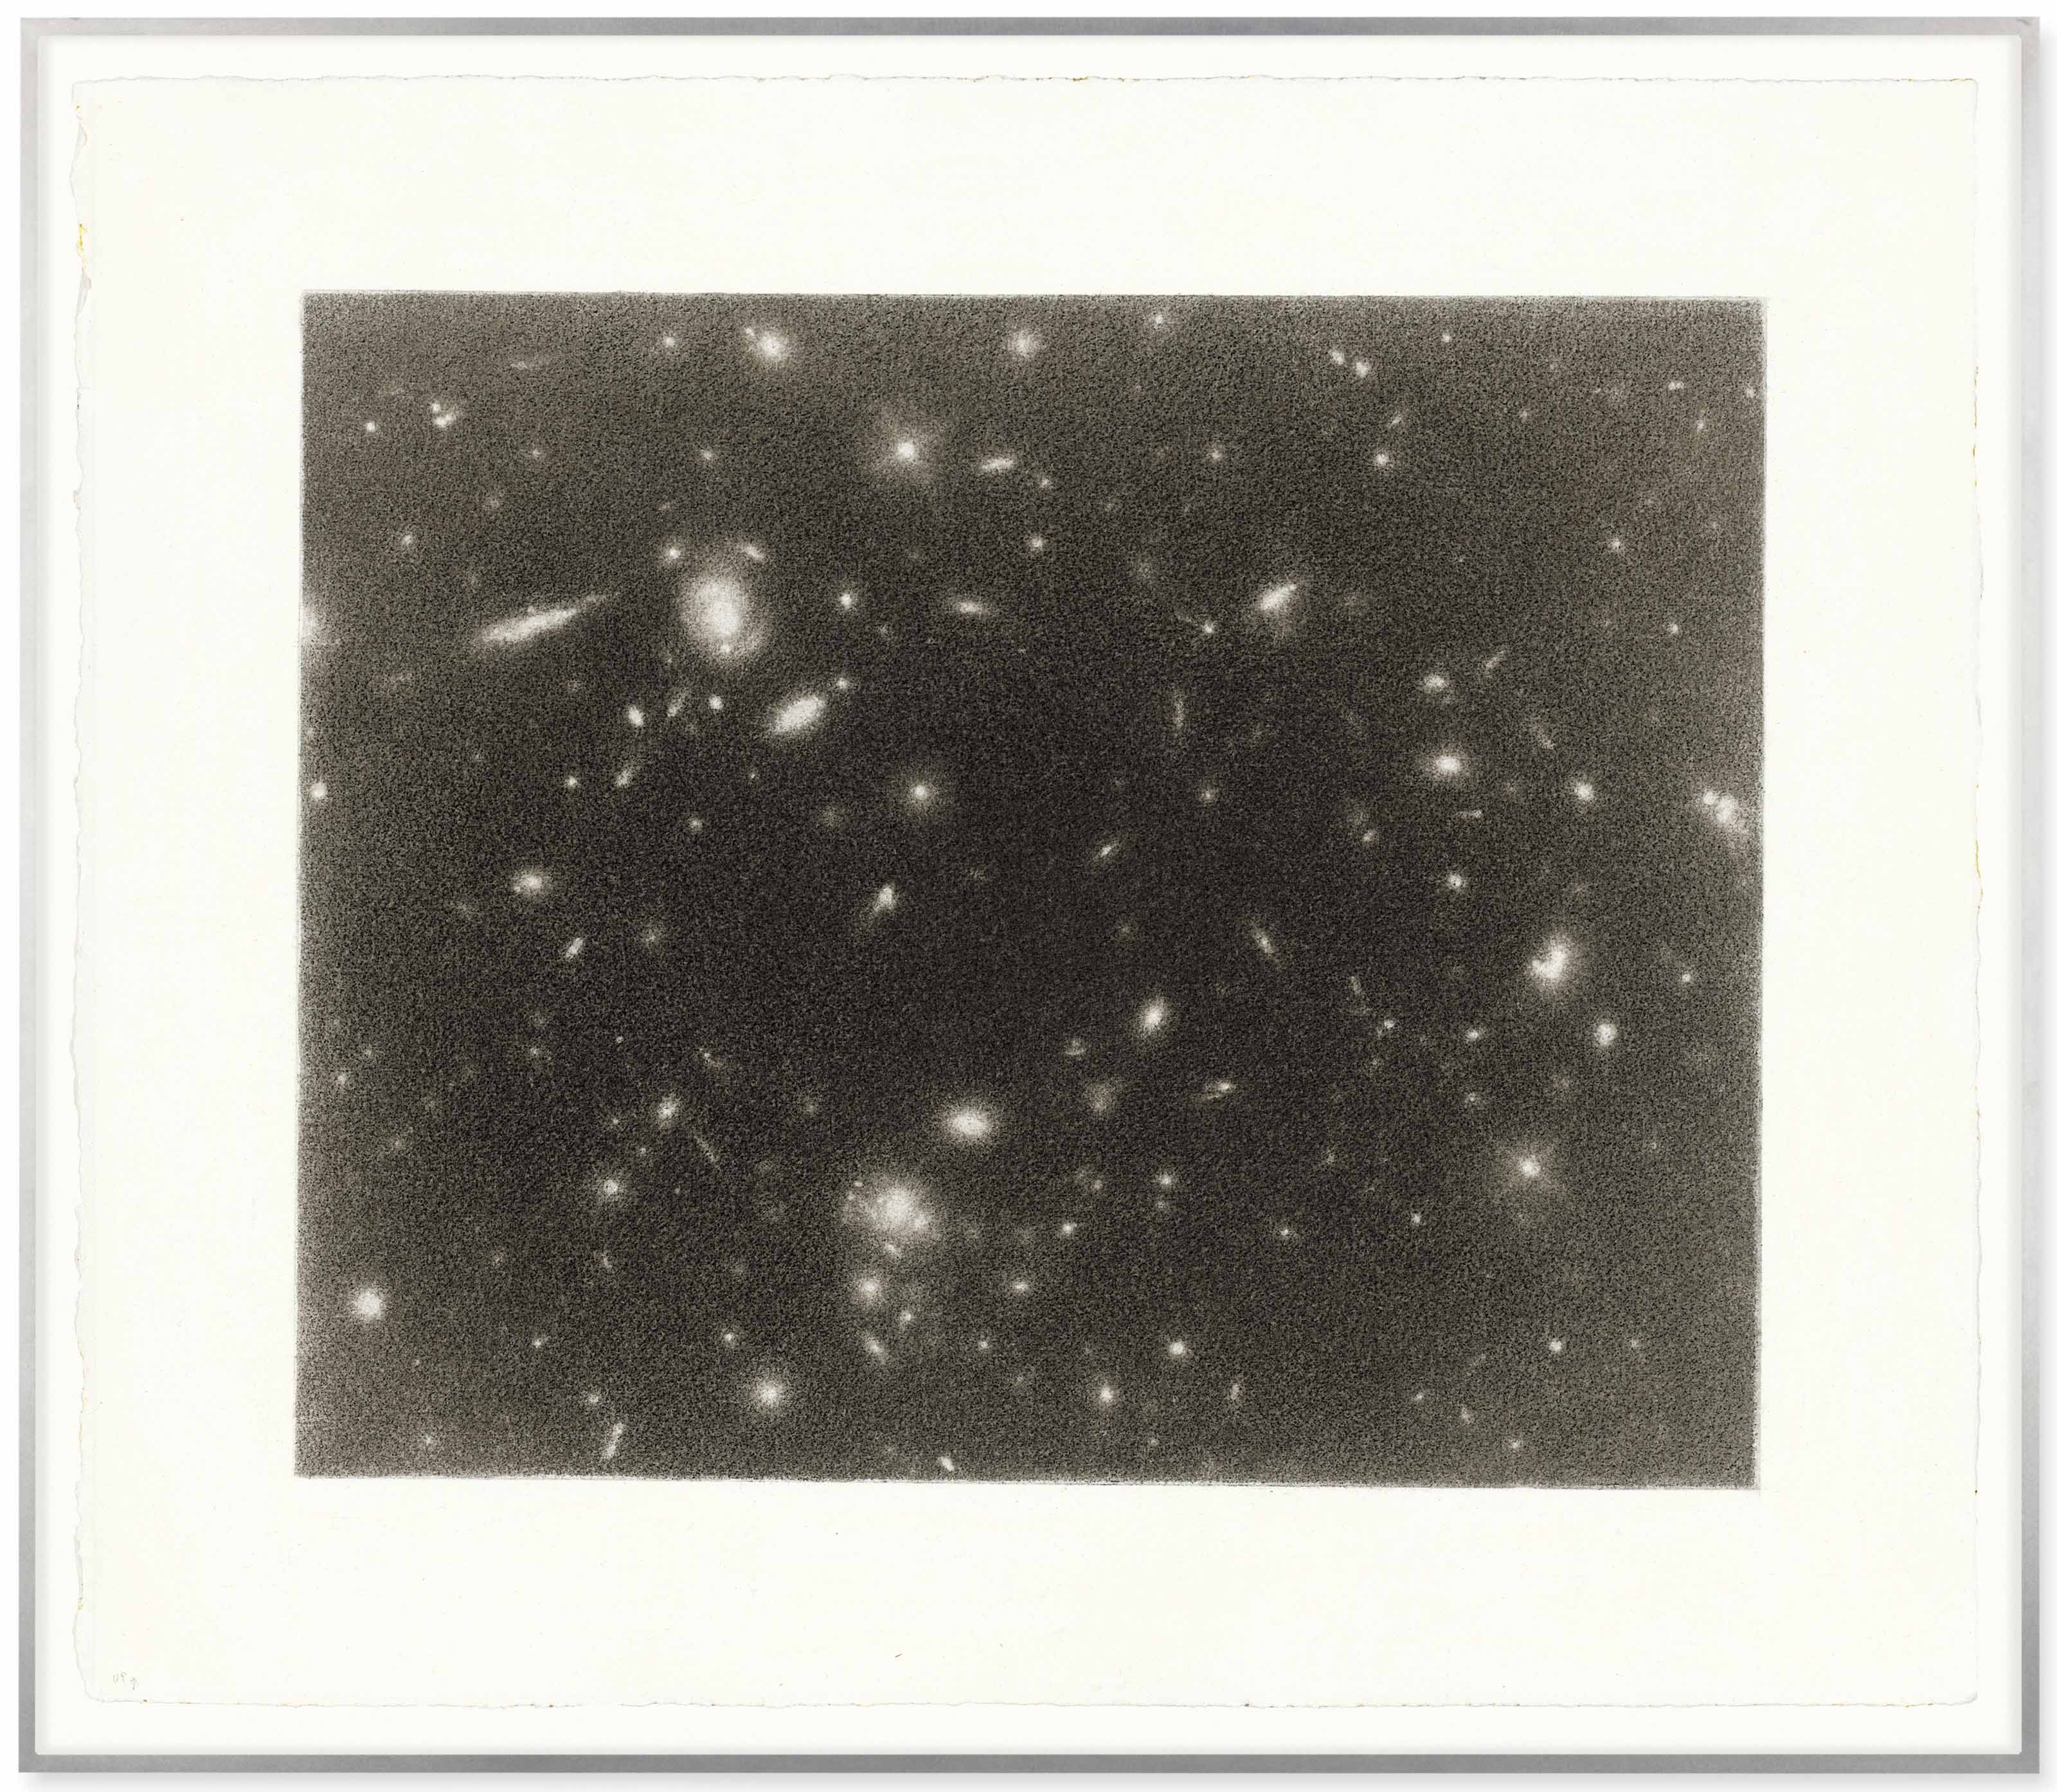 Vija Celmins (b. 1938), Hubble #3 , 1998. 15 x 17½ in (38 x 44.5 cm). Estimate £600,000-800,000. This lot is offered in the Post-War and Contemporary Art Evening Auction on 6 March 2018  at Christie's in London